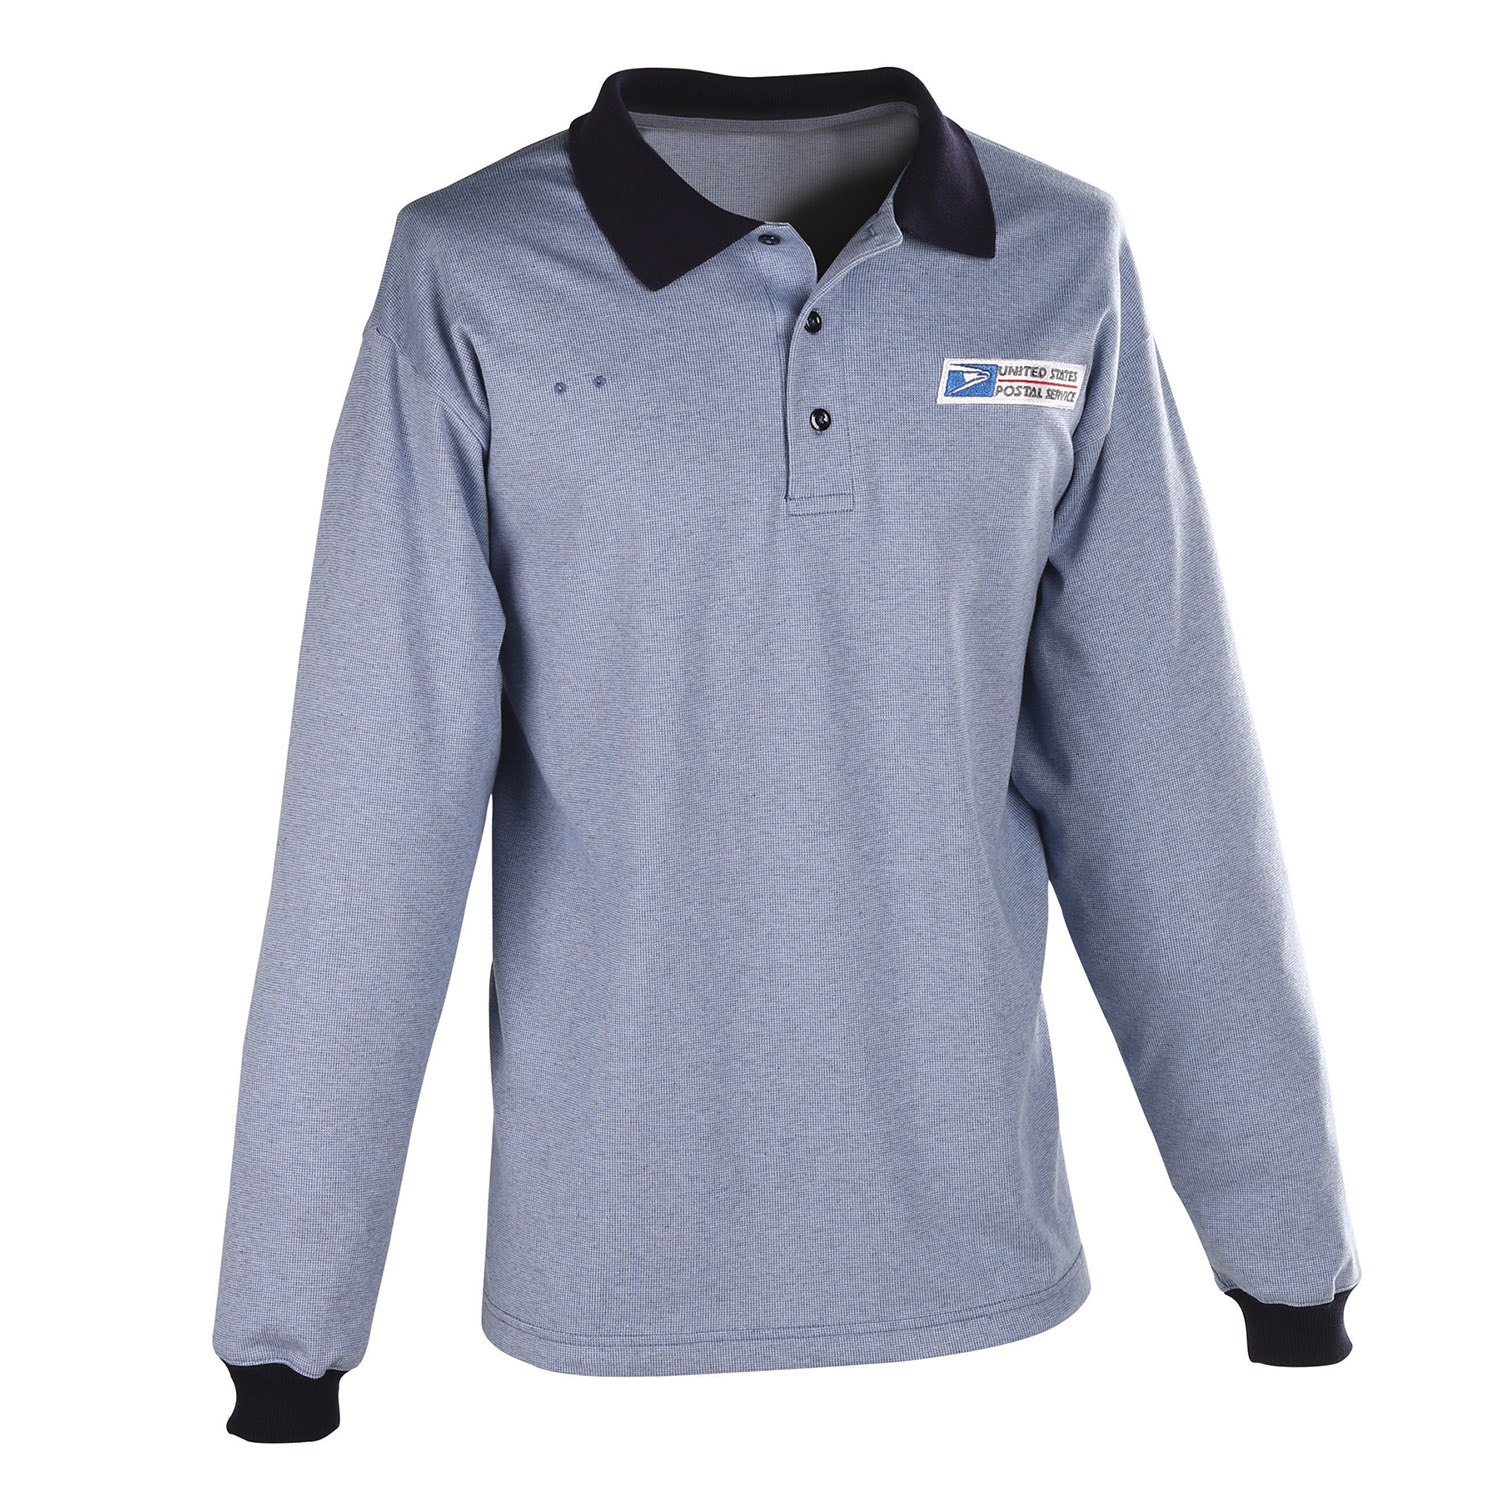 Postal Uniform Shirt Womens Polo Long Sleeve For Window C